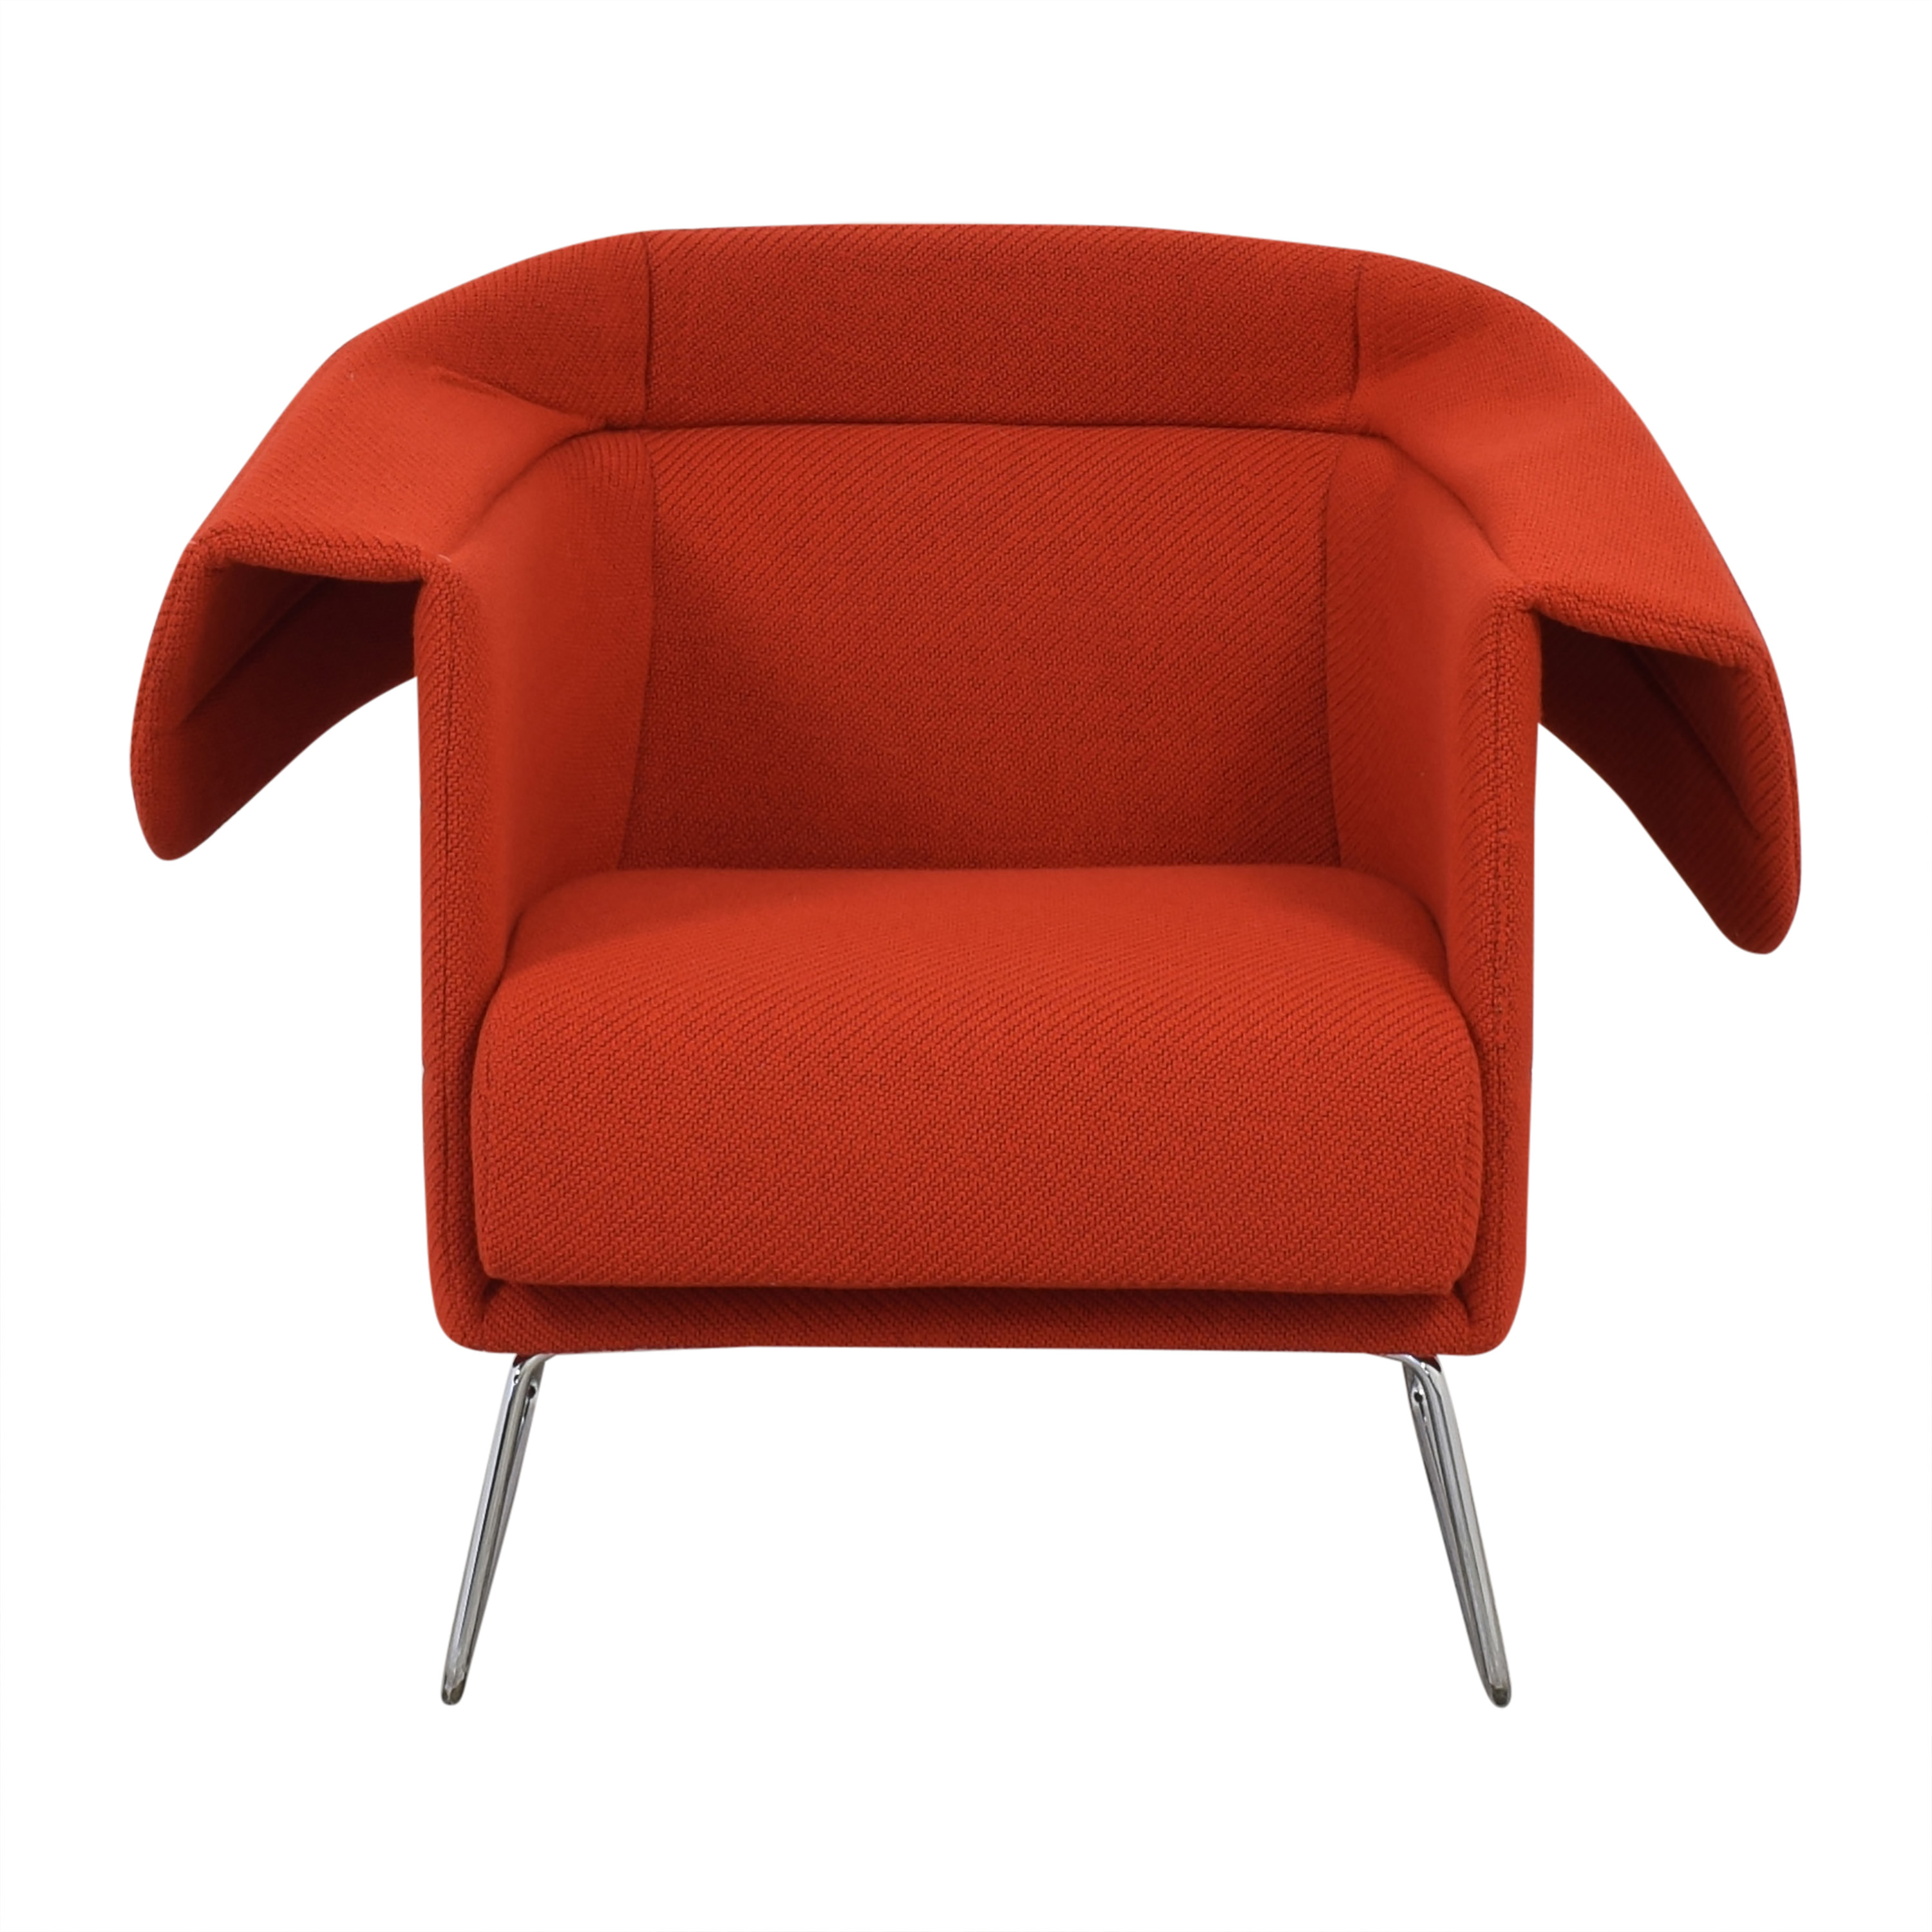 Koleksiyon Koleksiyon Collar Chair ct